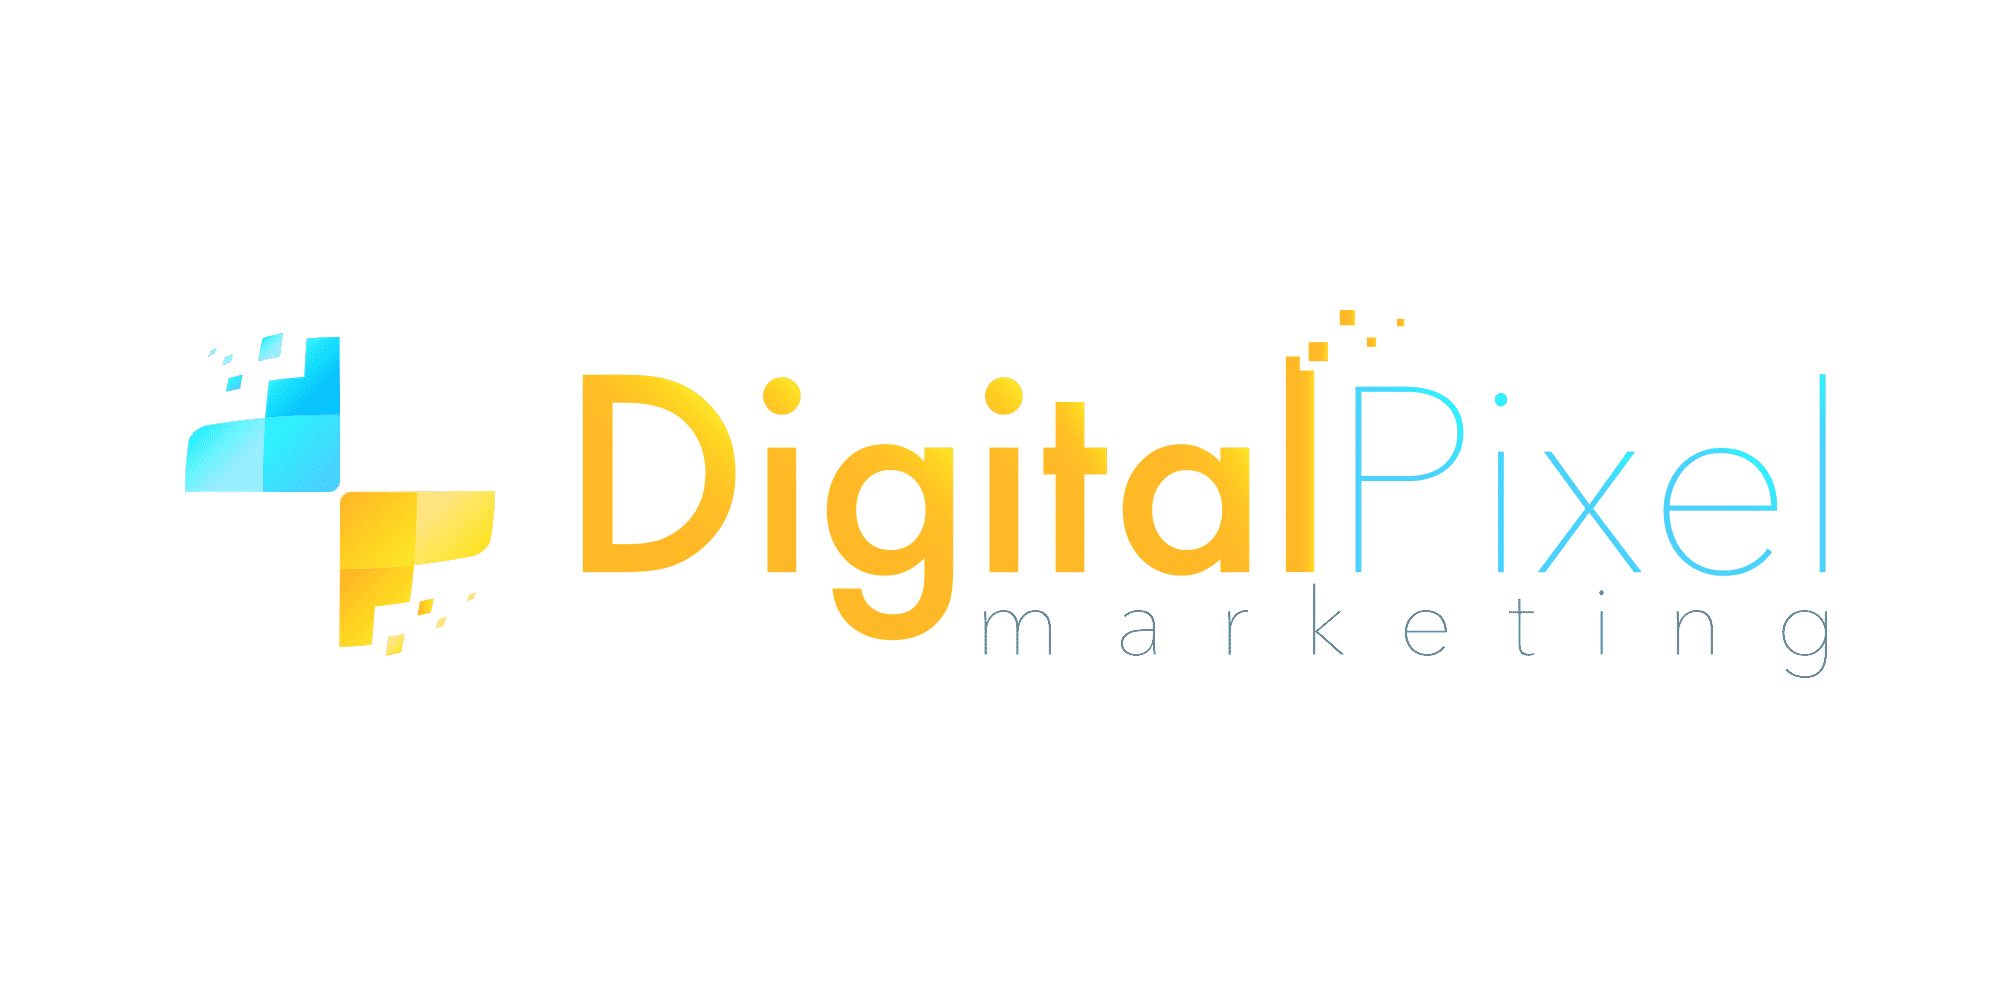 Digital Pixel Marketing